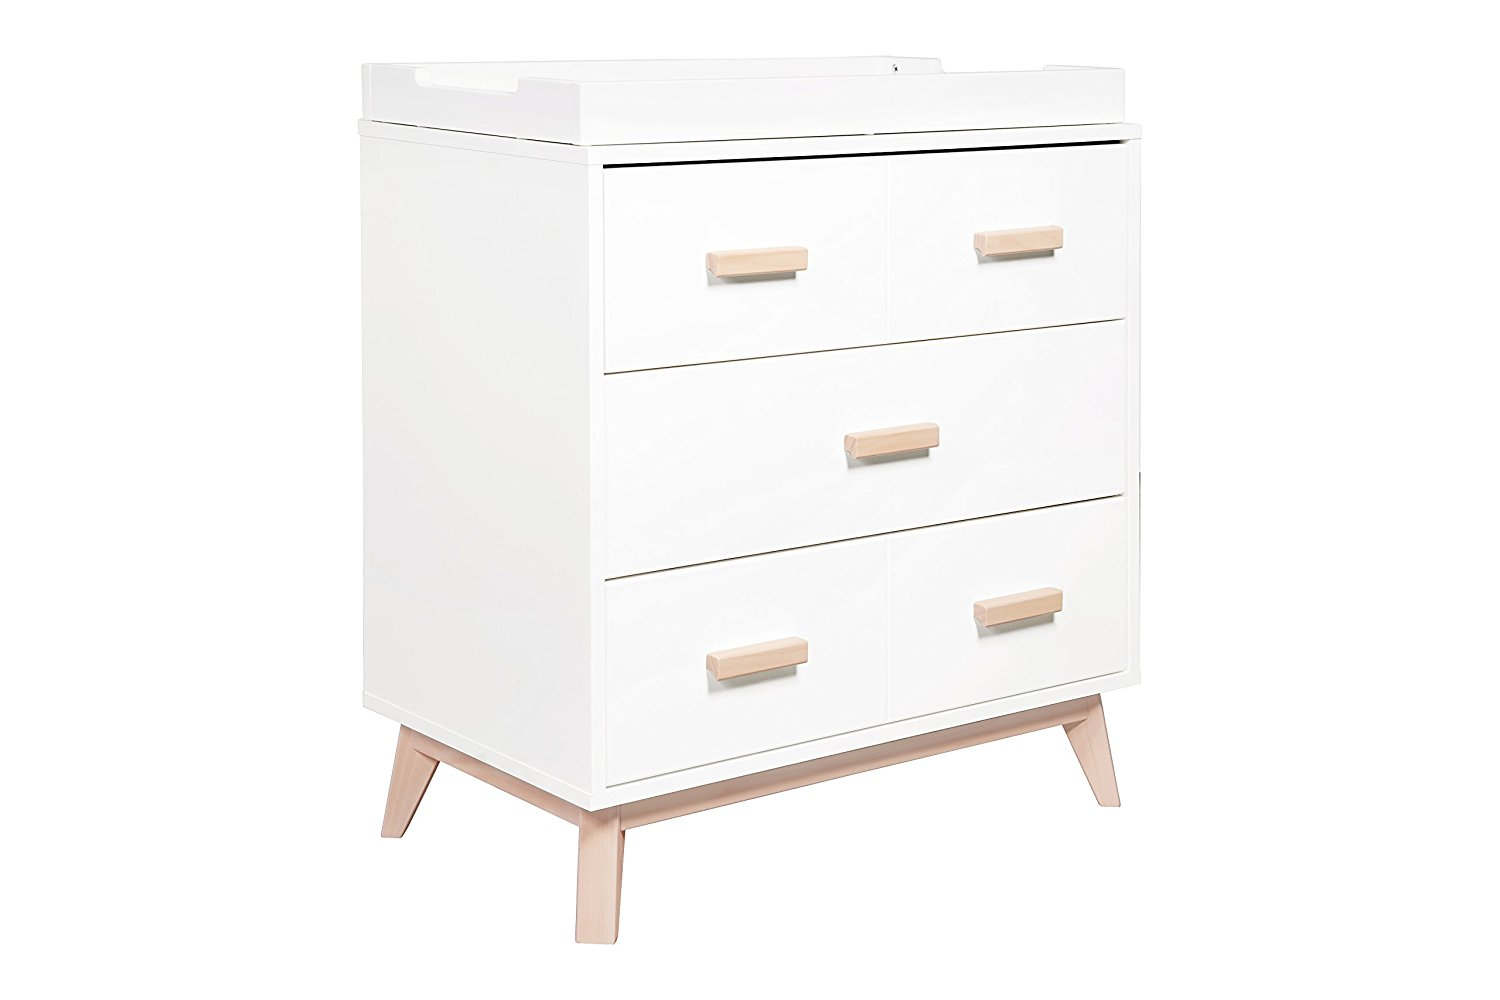 babyletto scoot 3-drawer changing table, best changing tables with drawers, changing tables with drawers, modern changing table, mid century changing table, white changing tables, natural wood changing table, stylish changing table